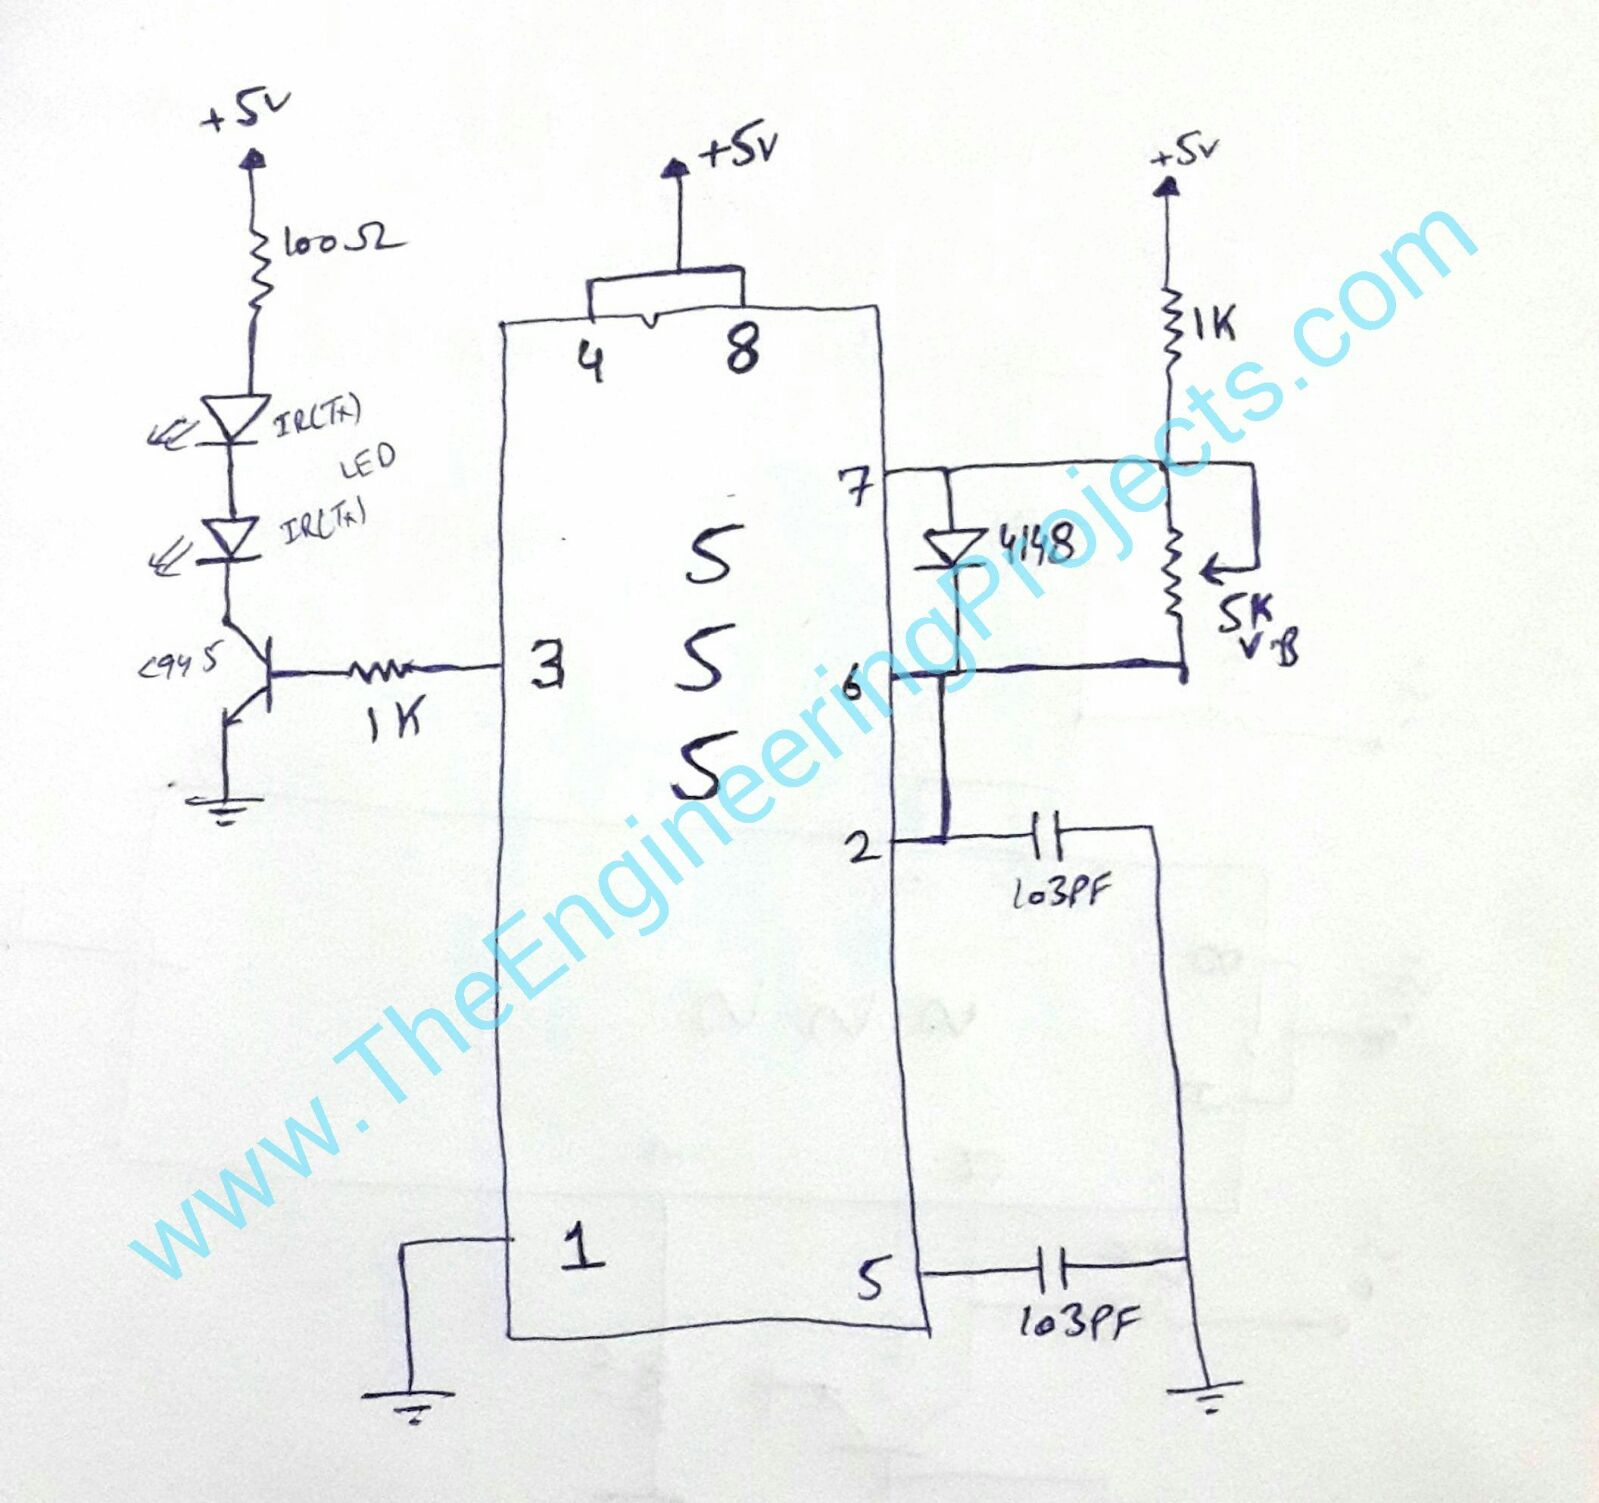 Infrared Proximity Sensor Wiring Diagram on infrared sensor circuit diagram, proximity sensor simple circuit diagram, ir sensor circuit diagram,